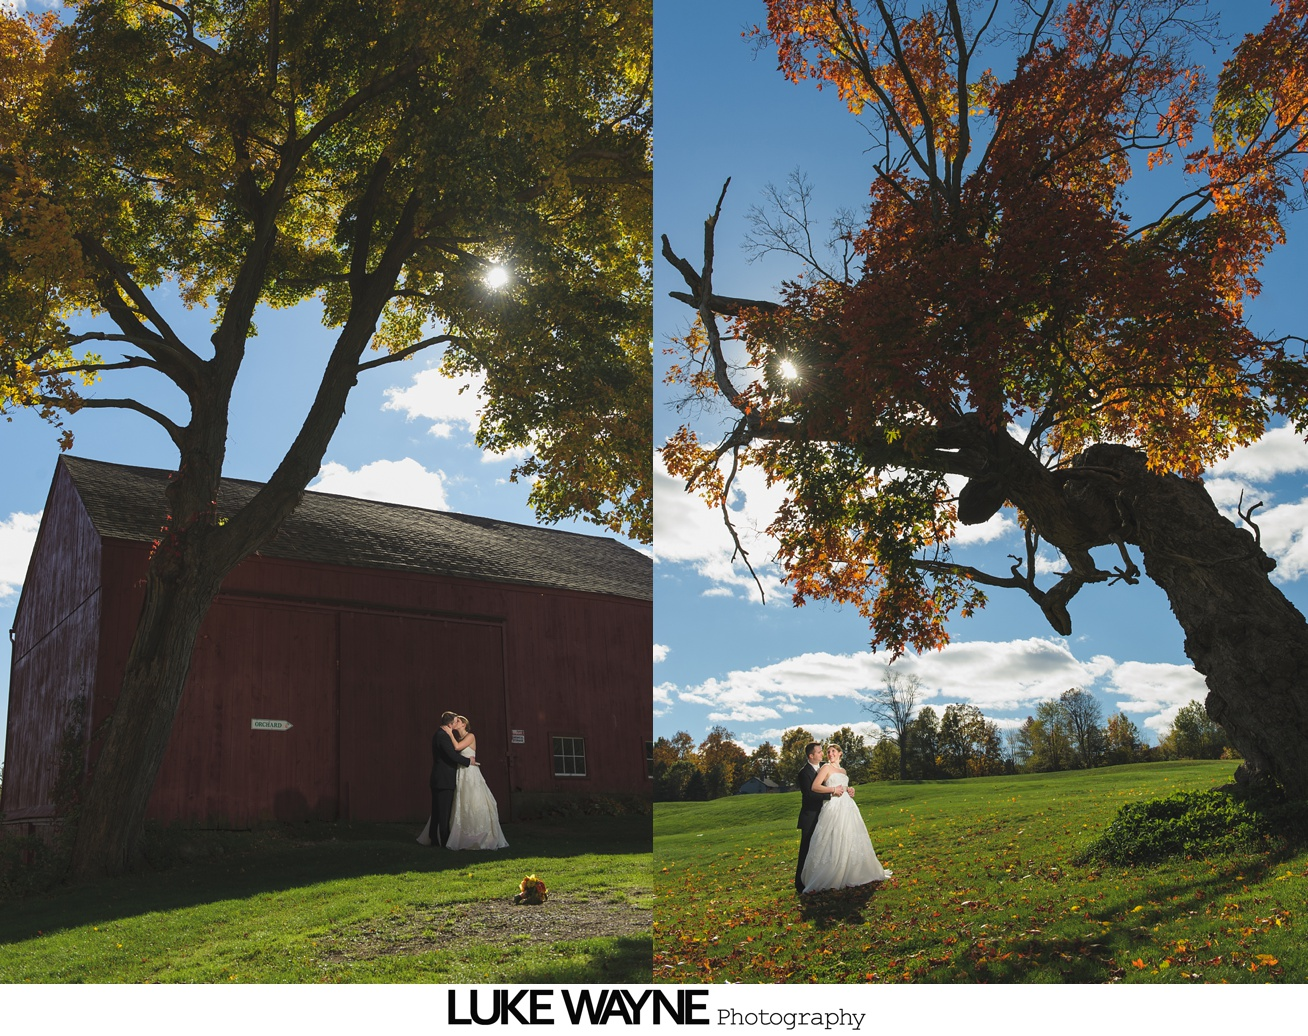 Saint_Clements_St_Wedding_Lyman_Orchards_Fall_Autumn_24